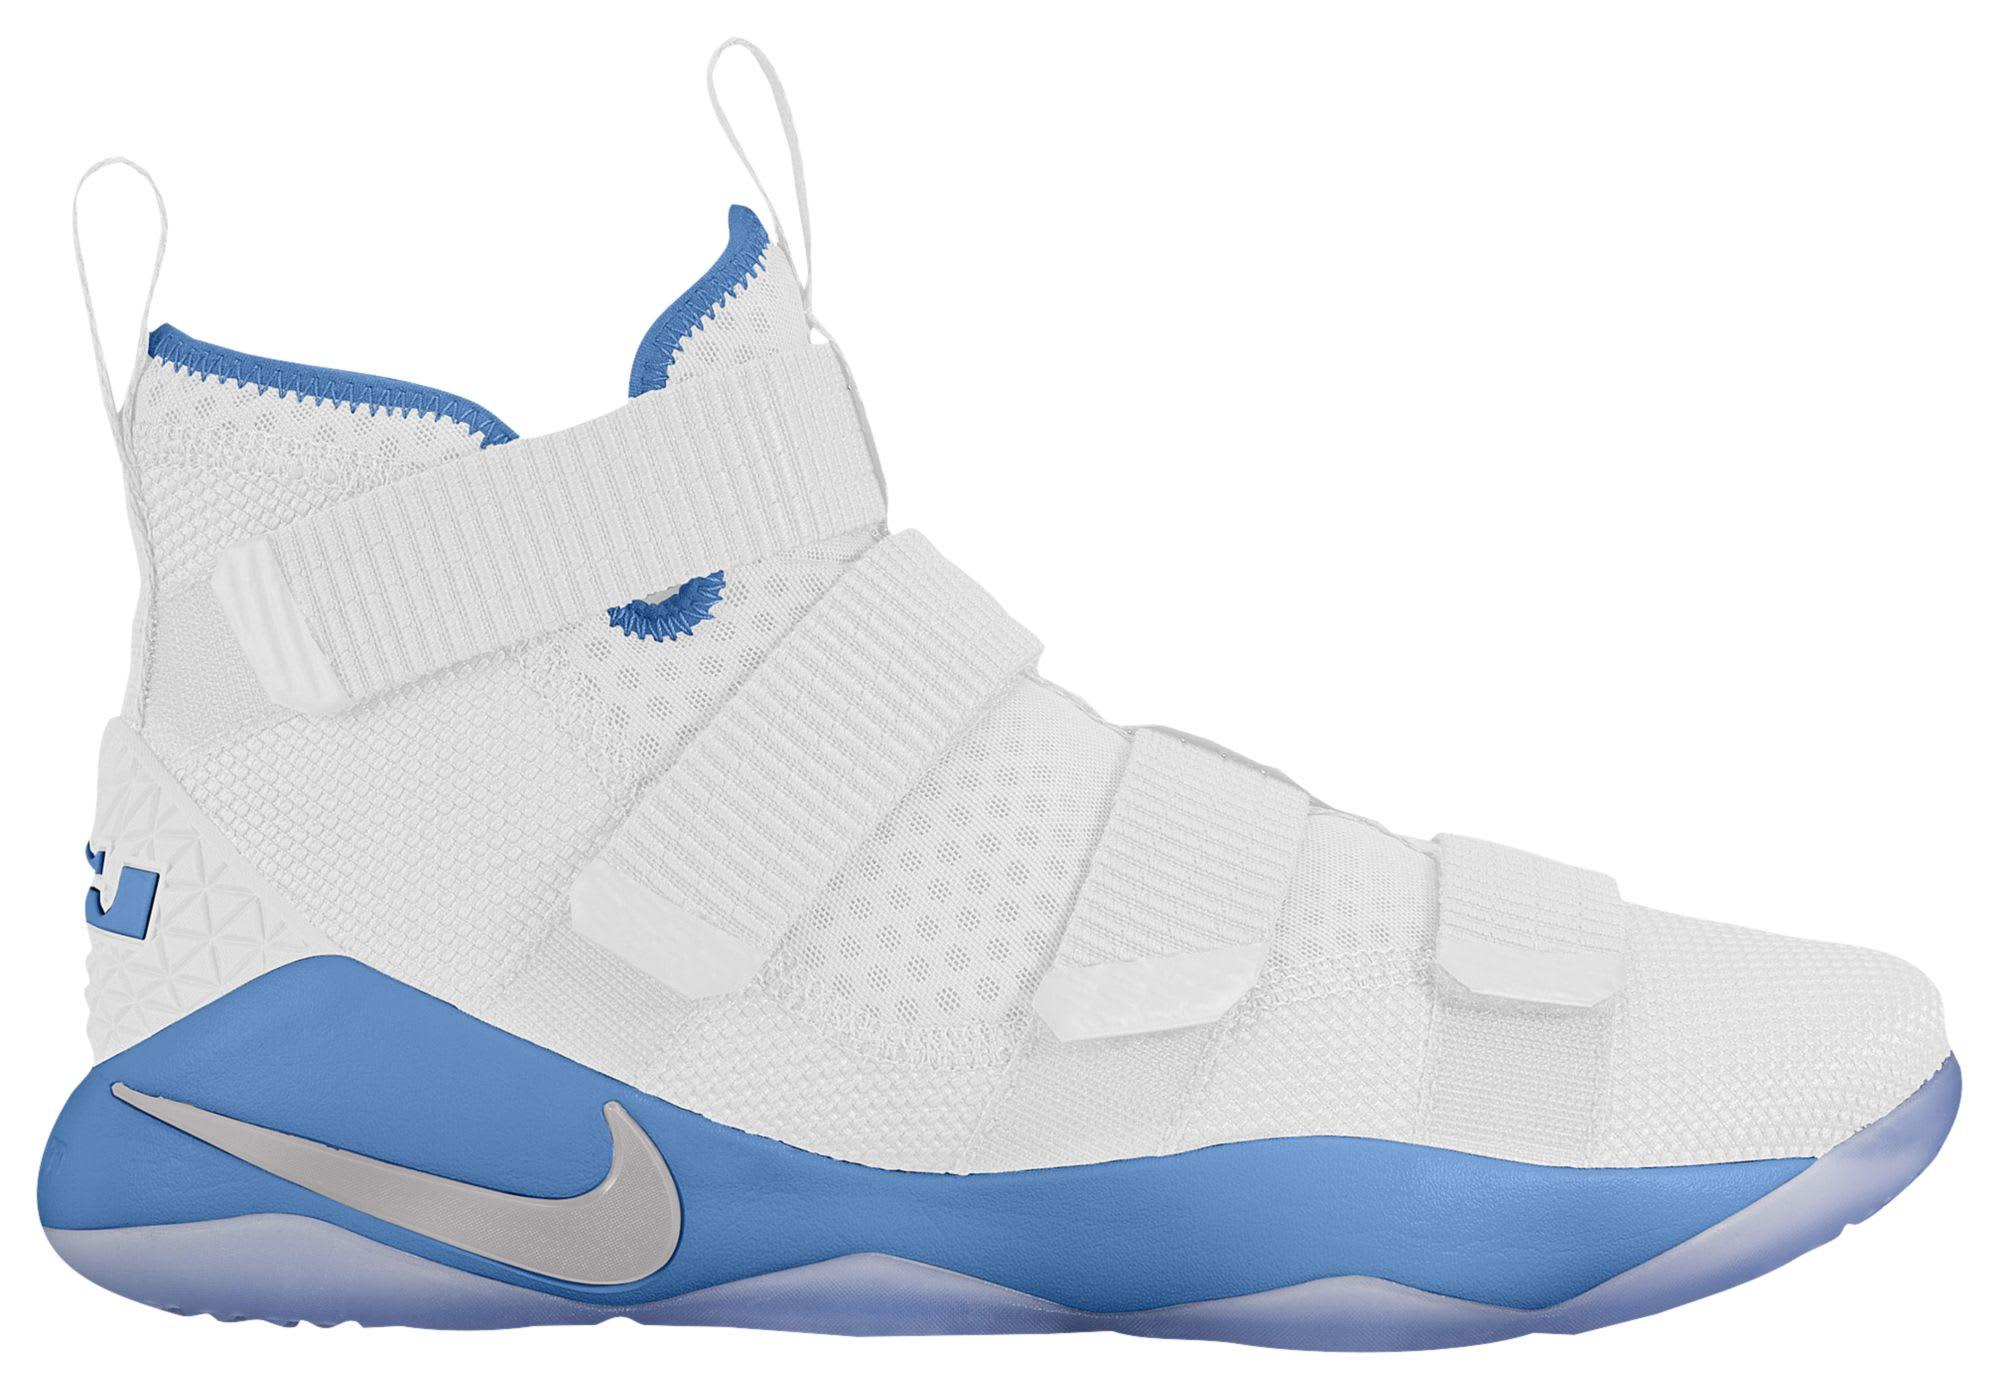 Nike LeBron Soldier 11 TB White Coast Blue